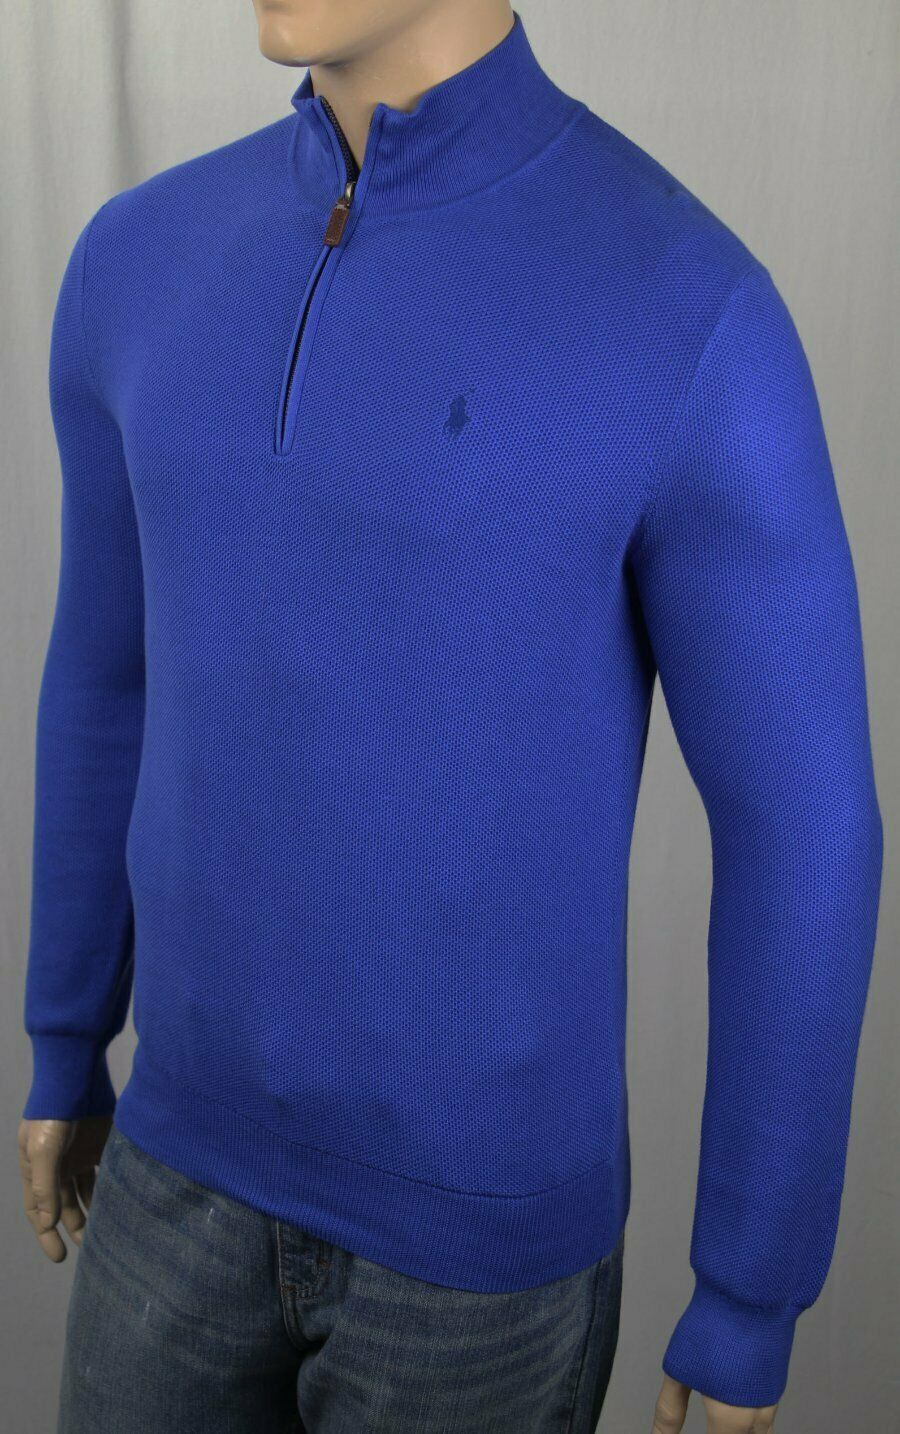 Polo Ralph Lauren bluee 1 2 Half Zip Pima Mesh Sweater bluee Pony Defective NWT